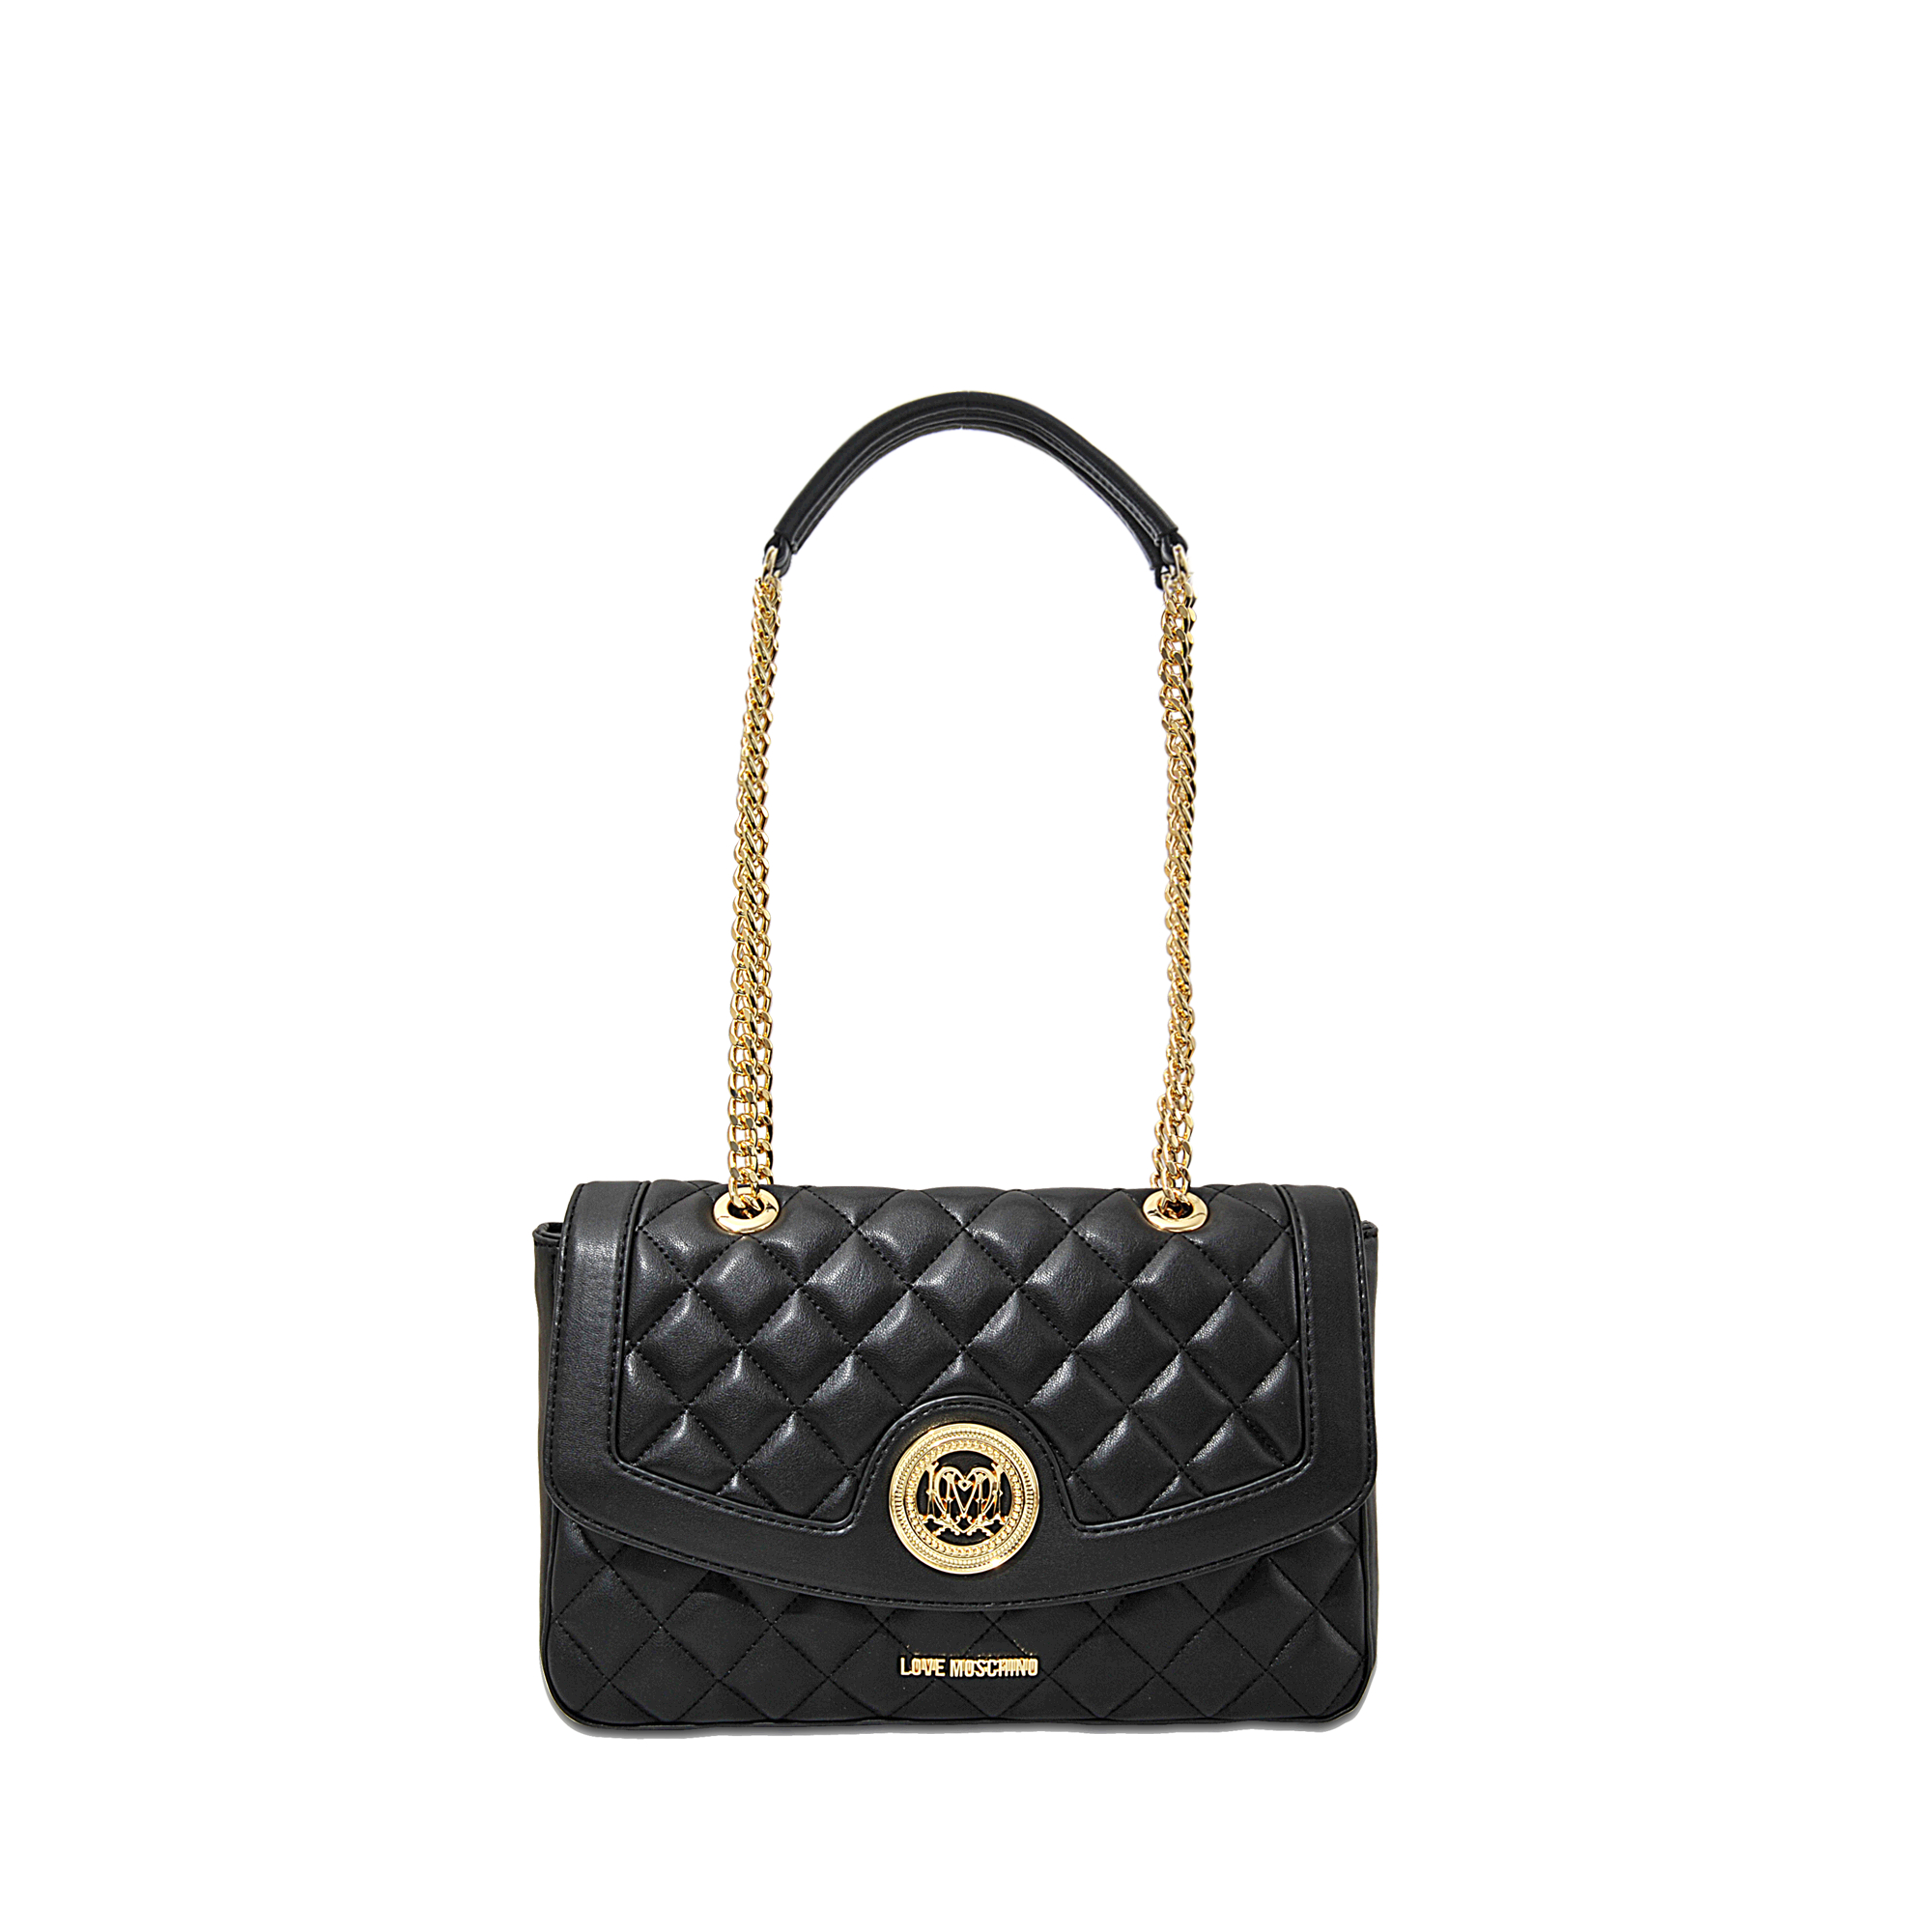 love moschino super quilted flap bag in black lyst. Black Bedroom Furniture Sets. Home Design Ideas